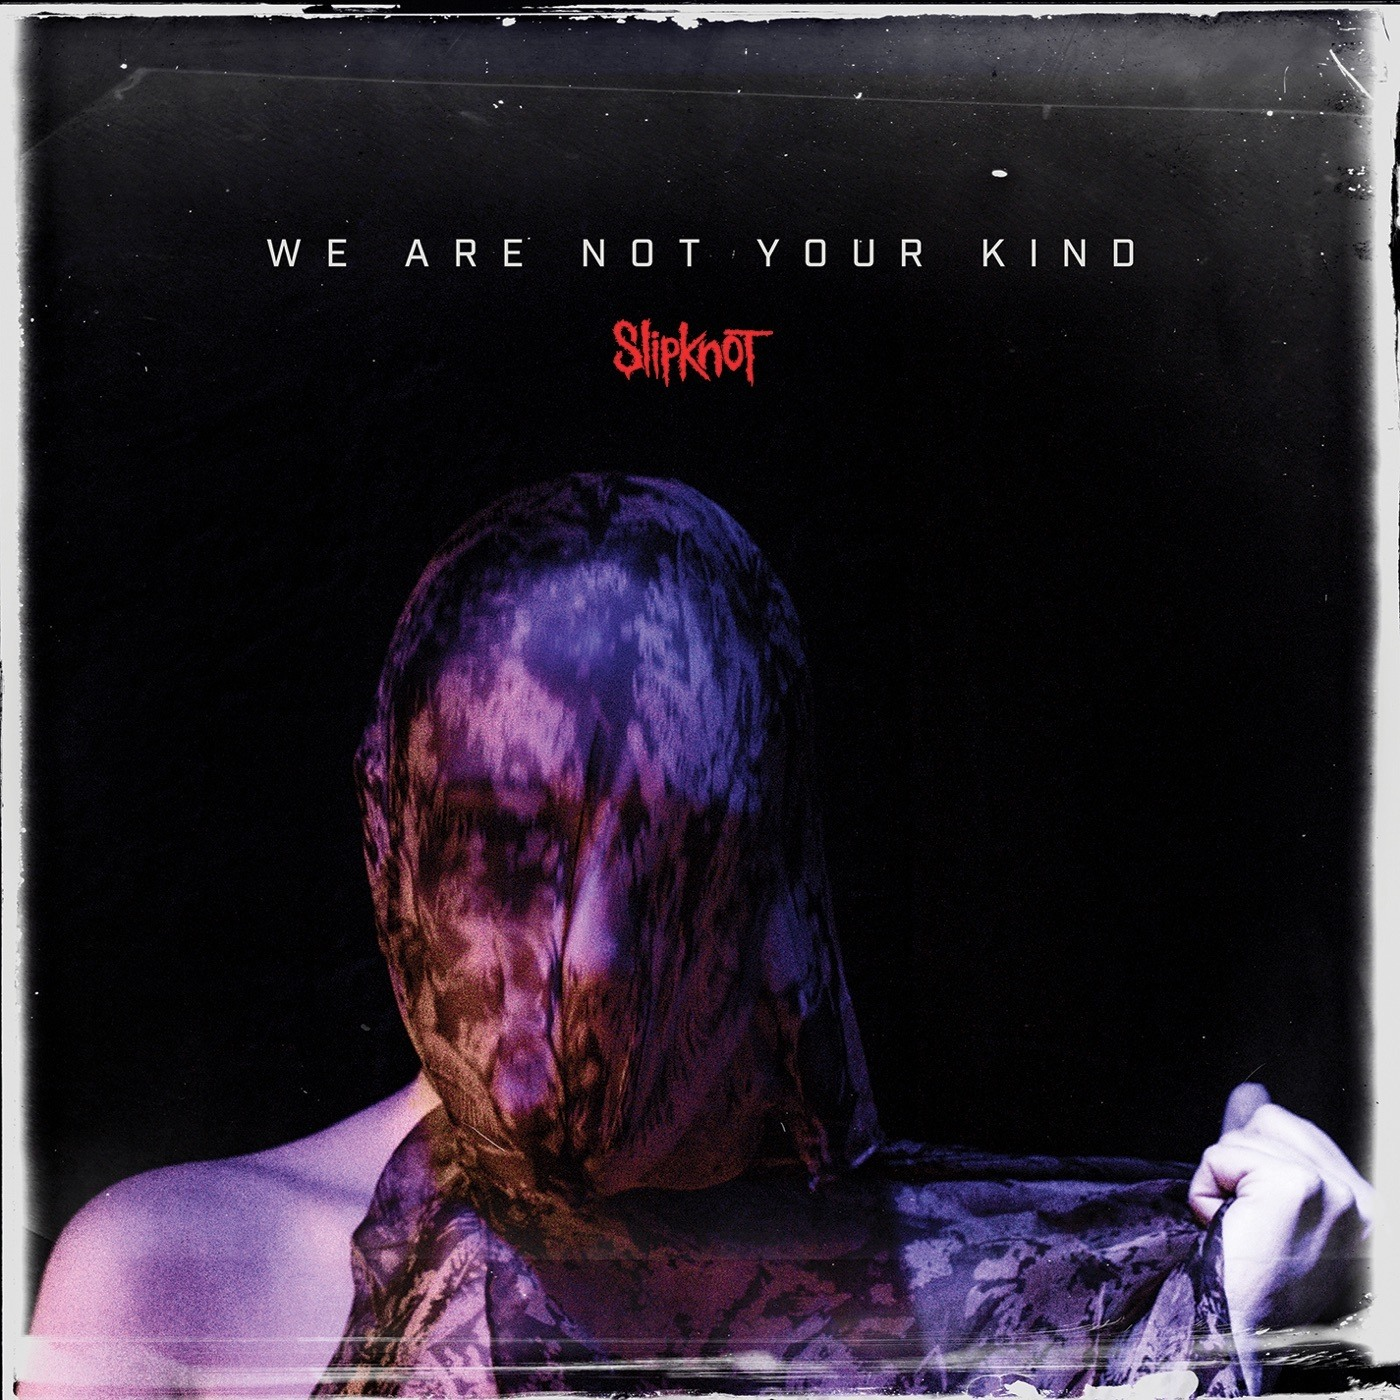 Slipknot 'We Are Not Your Kind' album cover